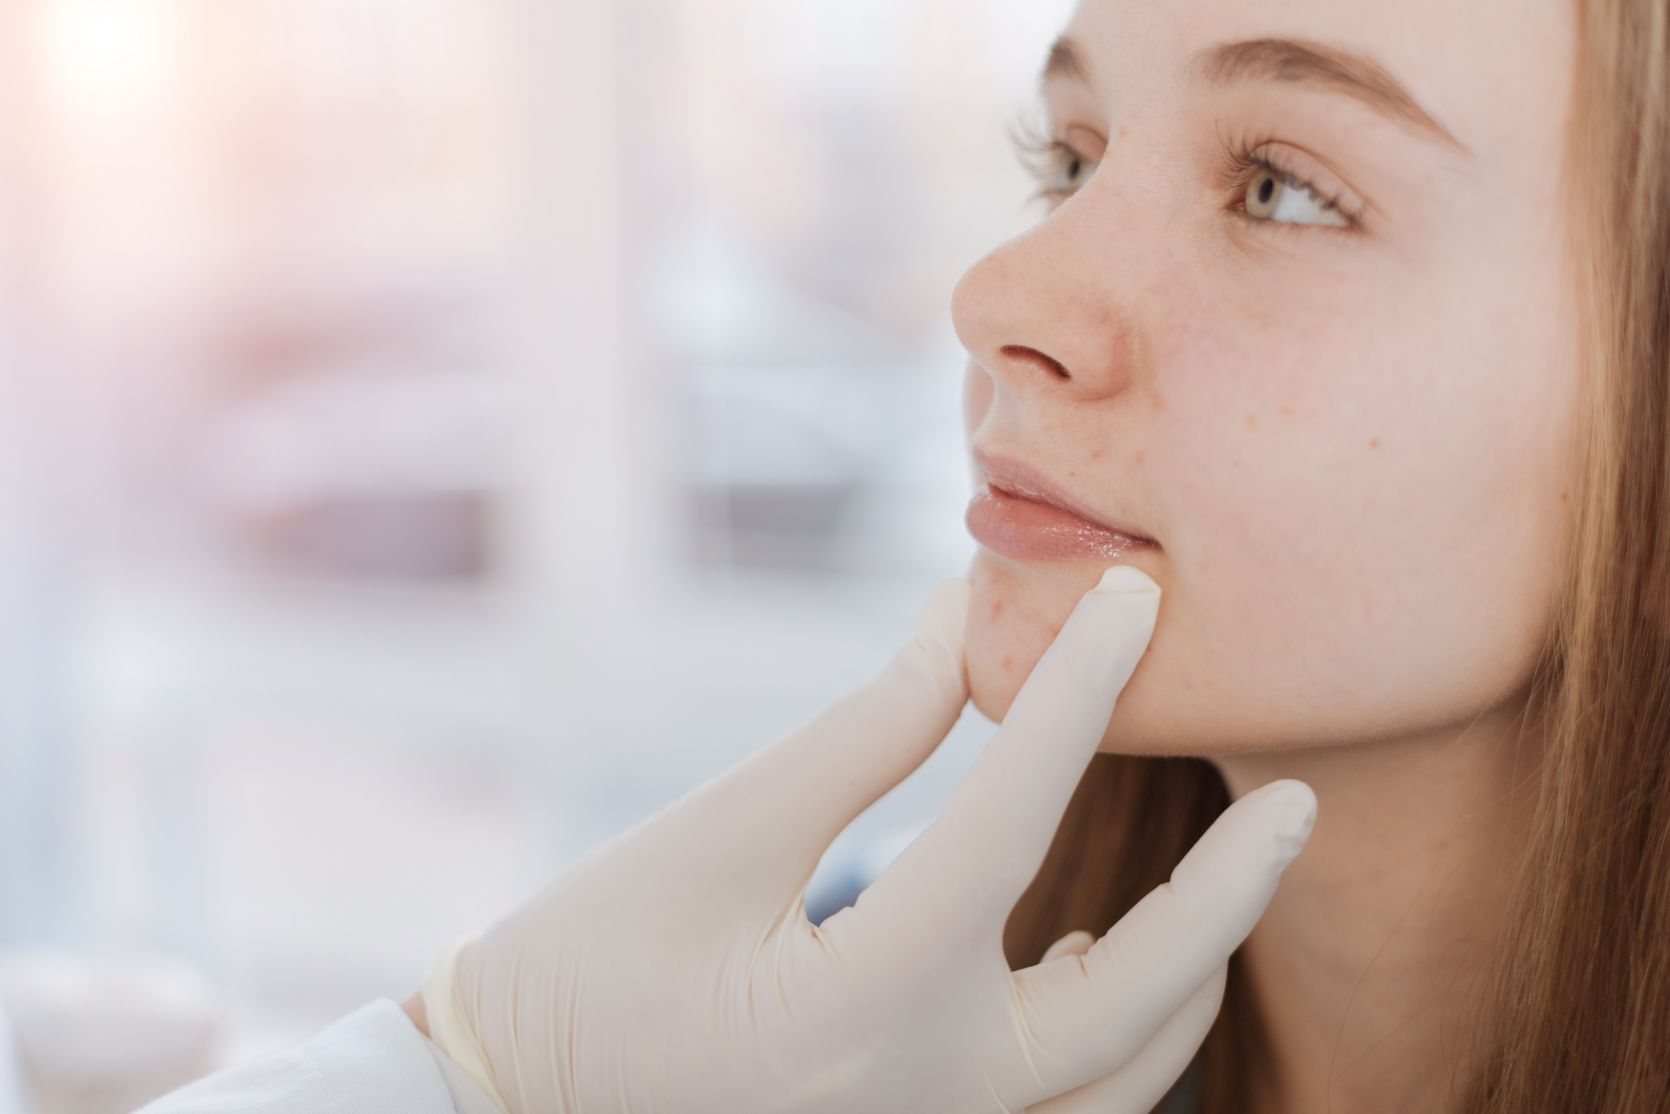 Adolescent Skin Disorders